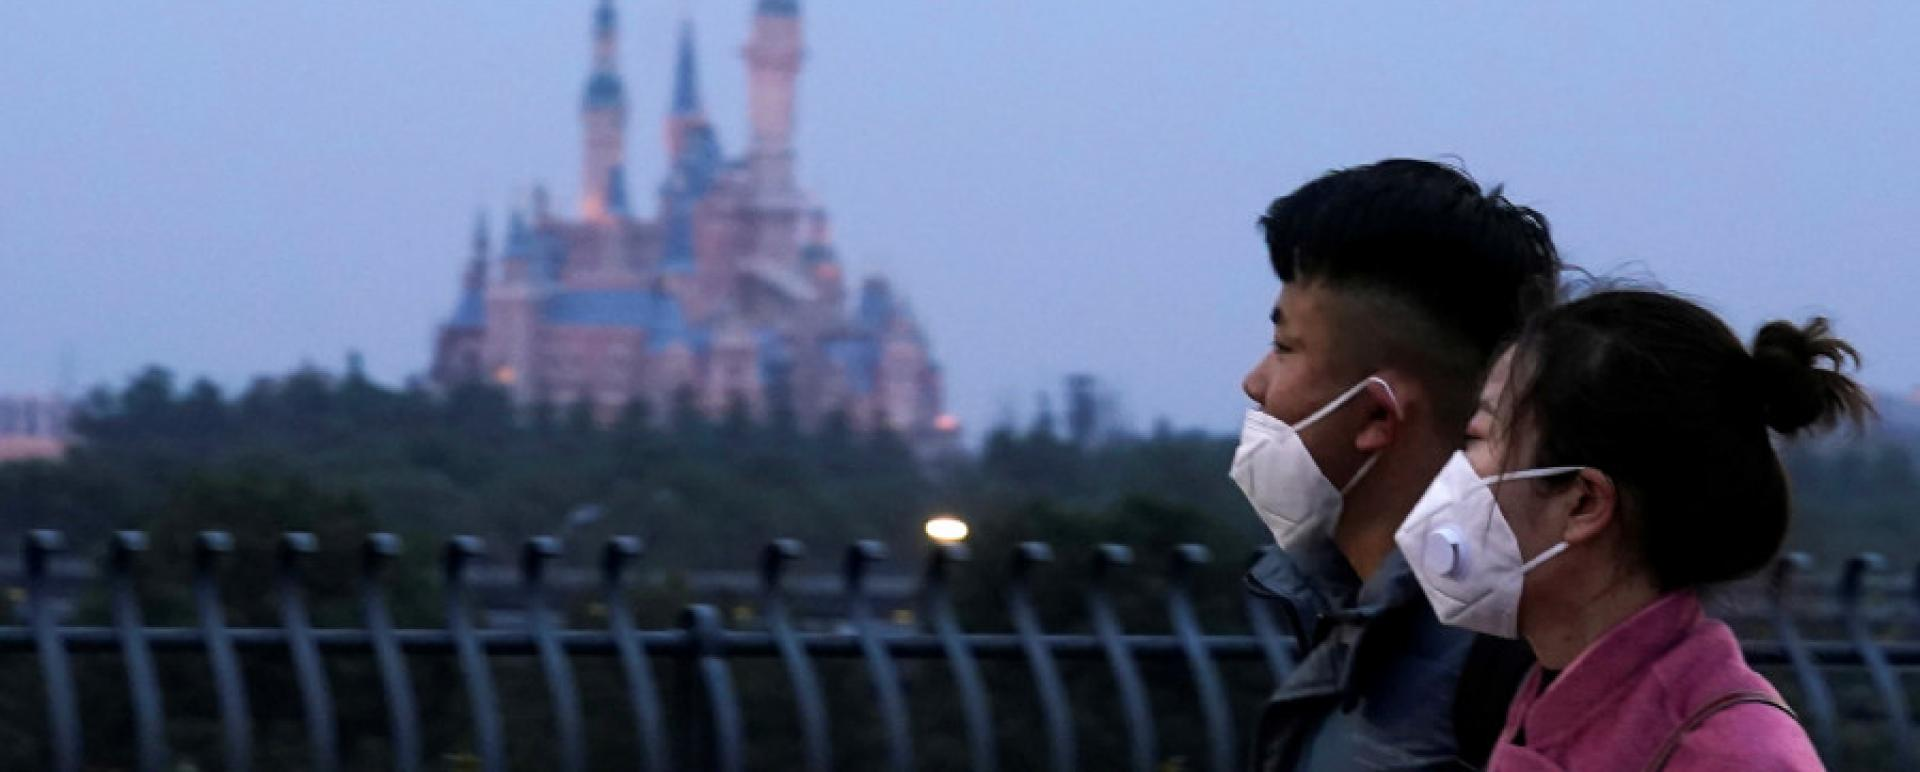 Visitors wearing masks walk past Shanghai Disney Resort, China, on Friday. The resort was closed during the Chinese Lunar New Year holiday on Saturday following the outbreak of a new coronavirus. Reuters